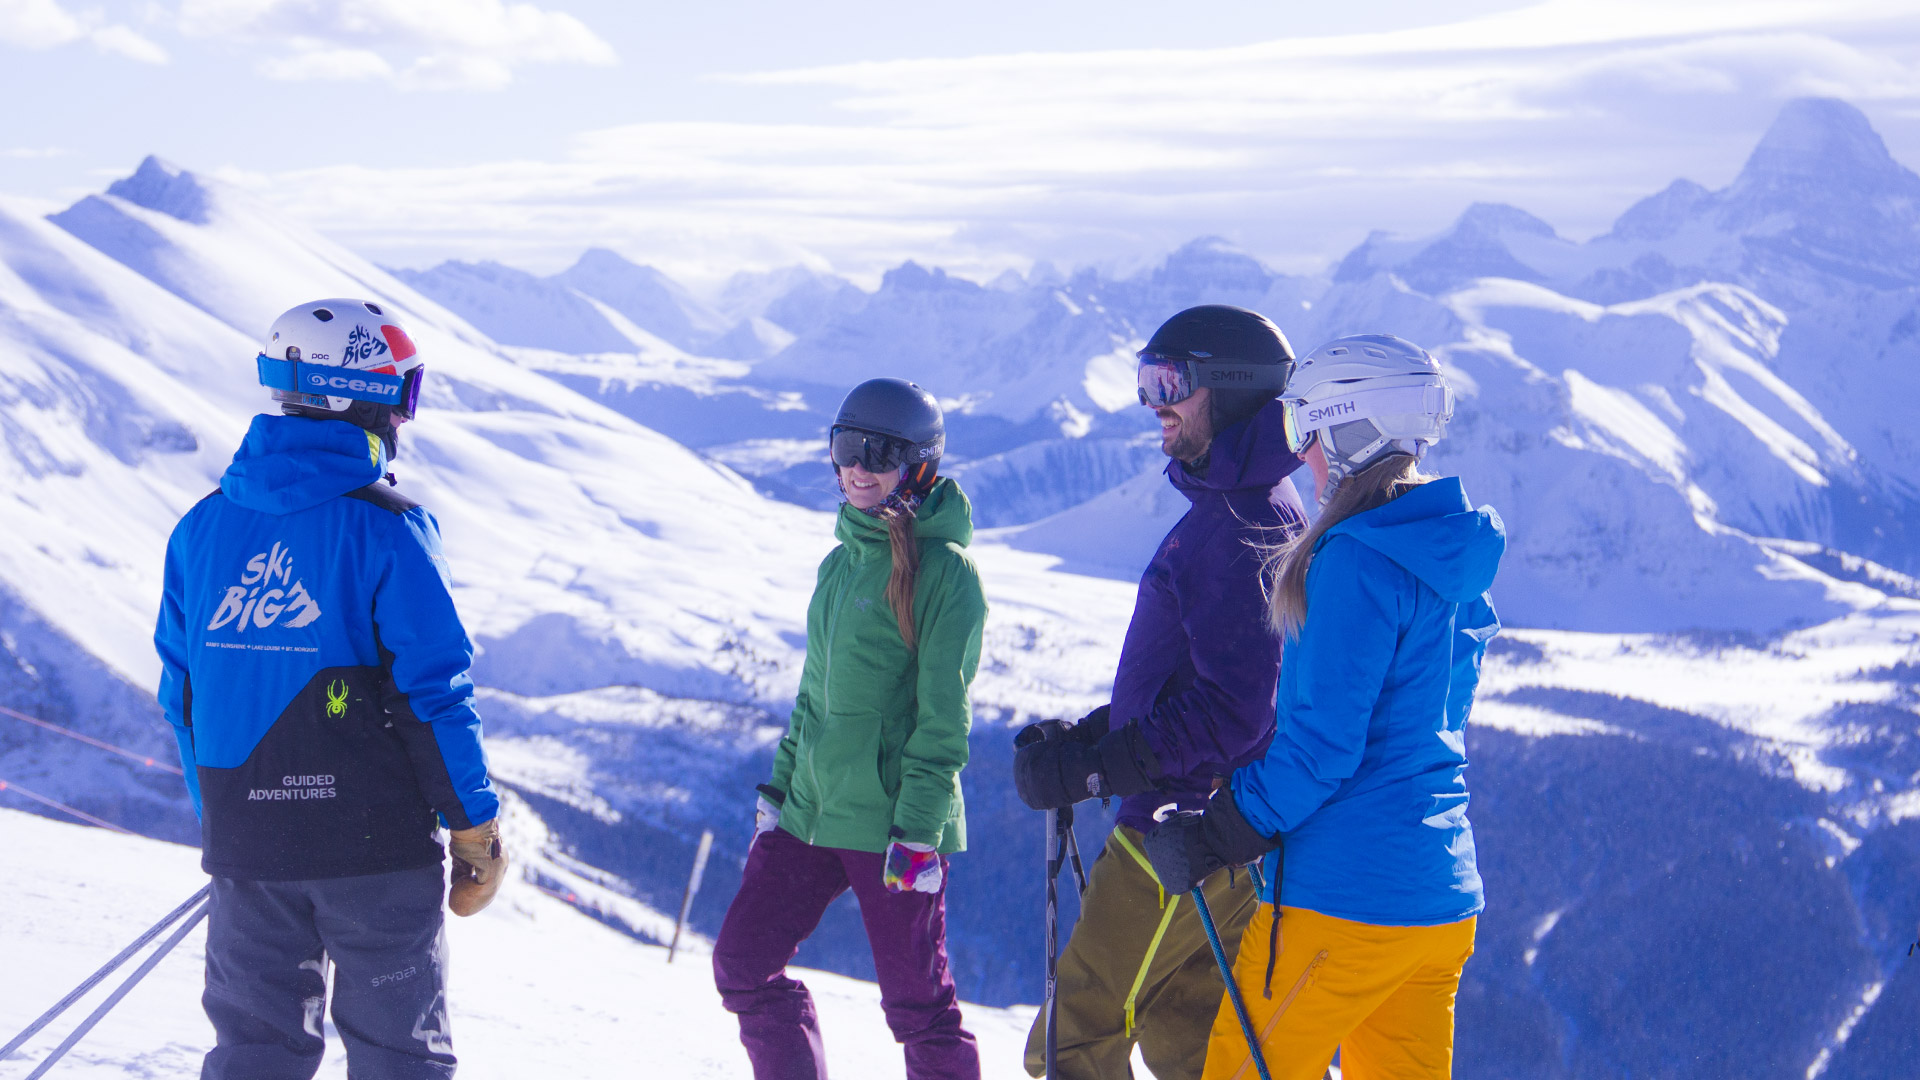 Group of skiers on a guided adventure at Sunshine Village